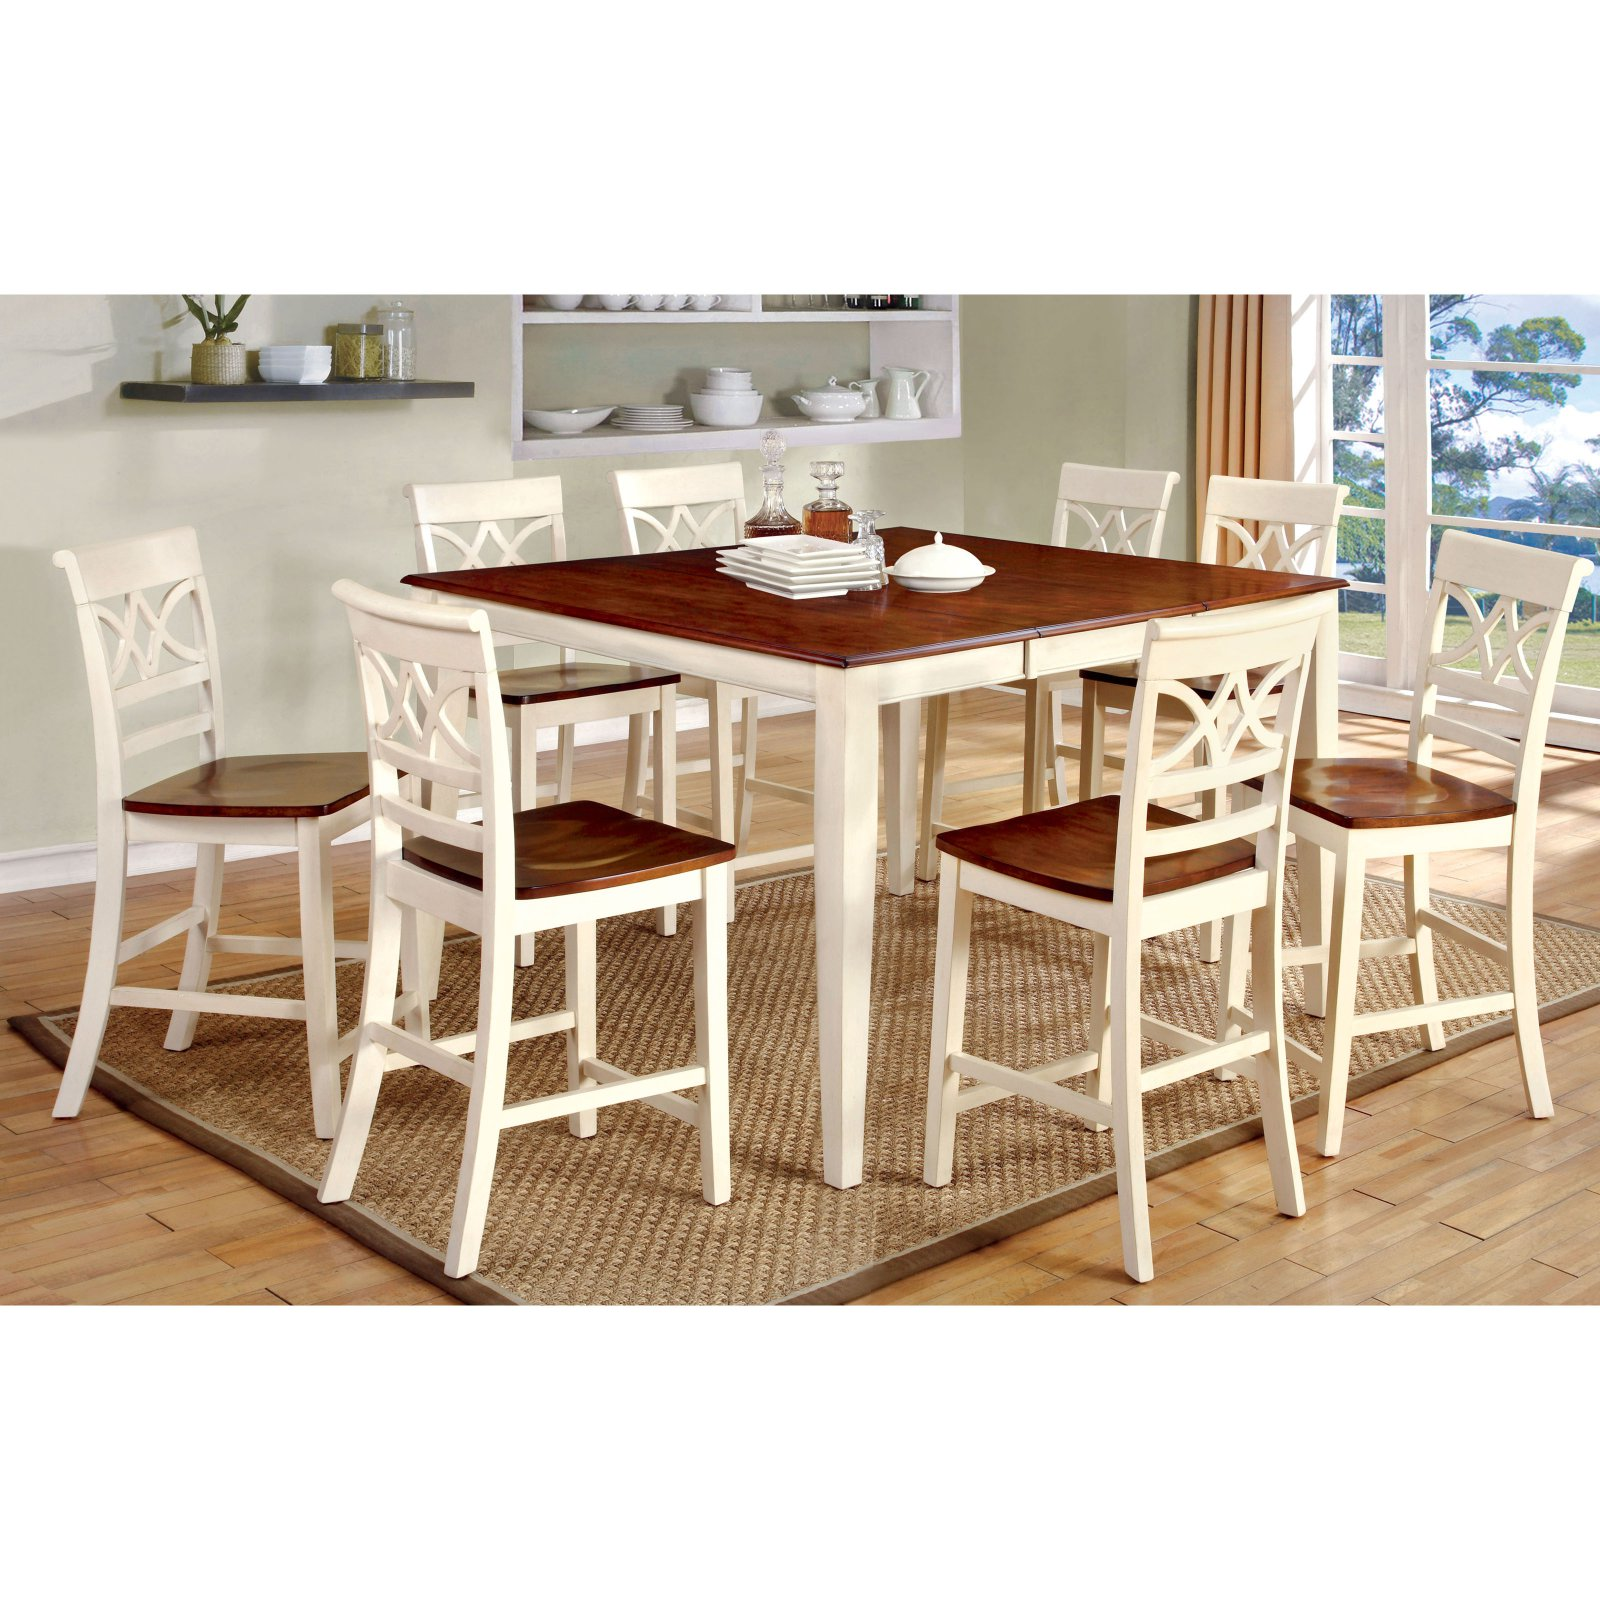 Furniture Of America Seaberg Country White 9 Piece Counter Height Dining Set